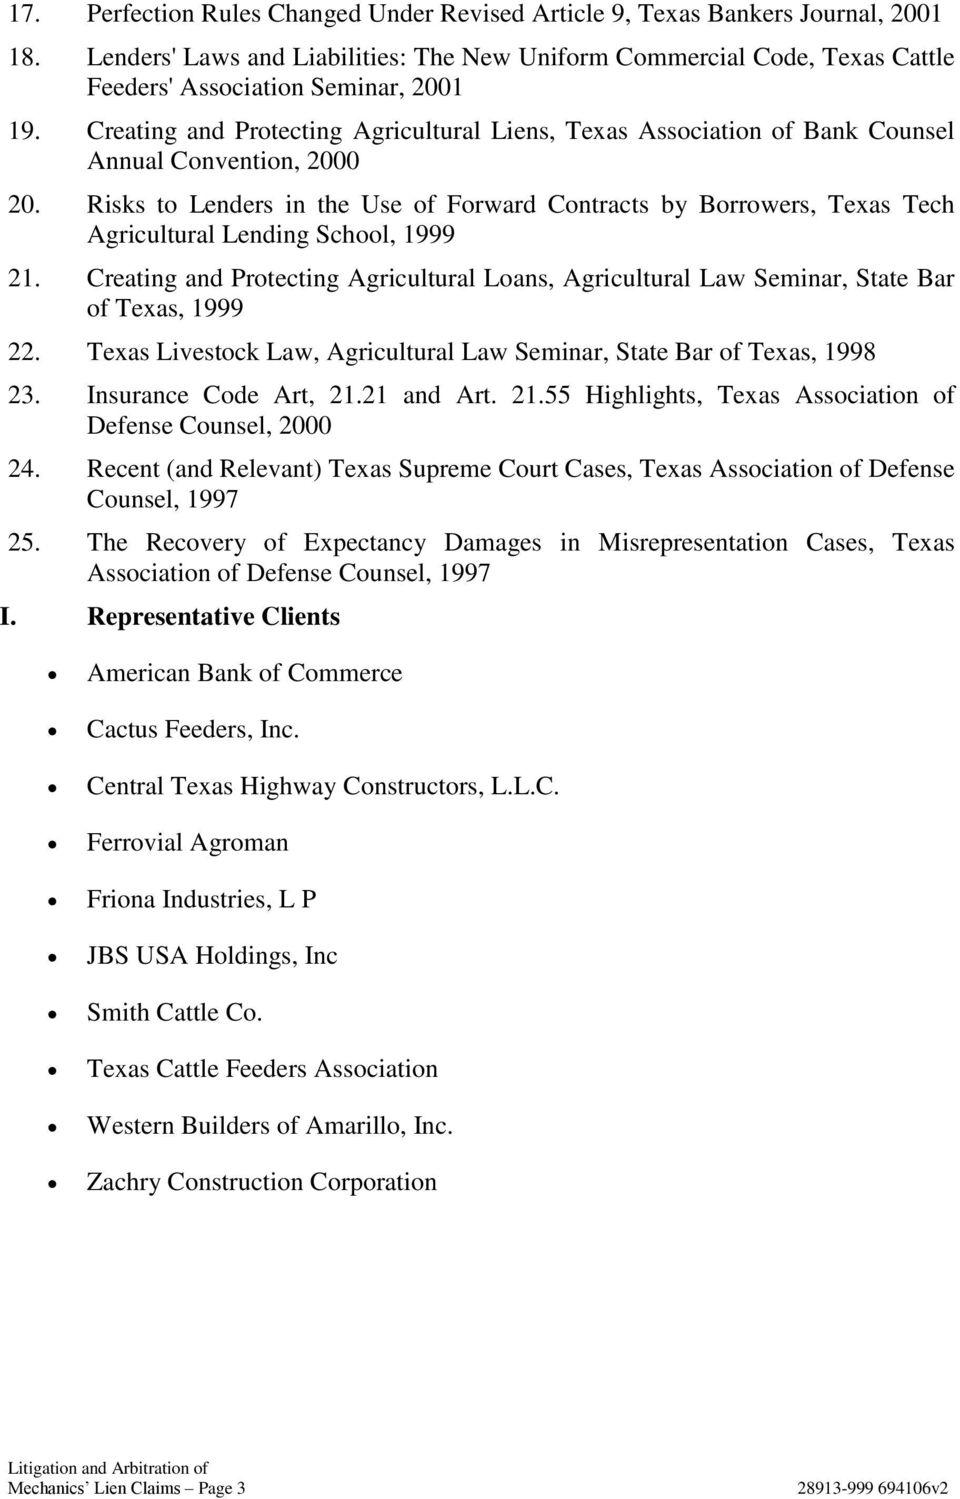 Creating and Protecting Agricultural Liens, Texas Association of Bank Counsel Annual Convention, 2000 20.